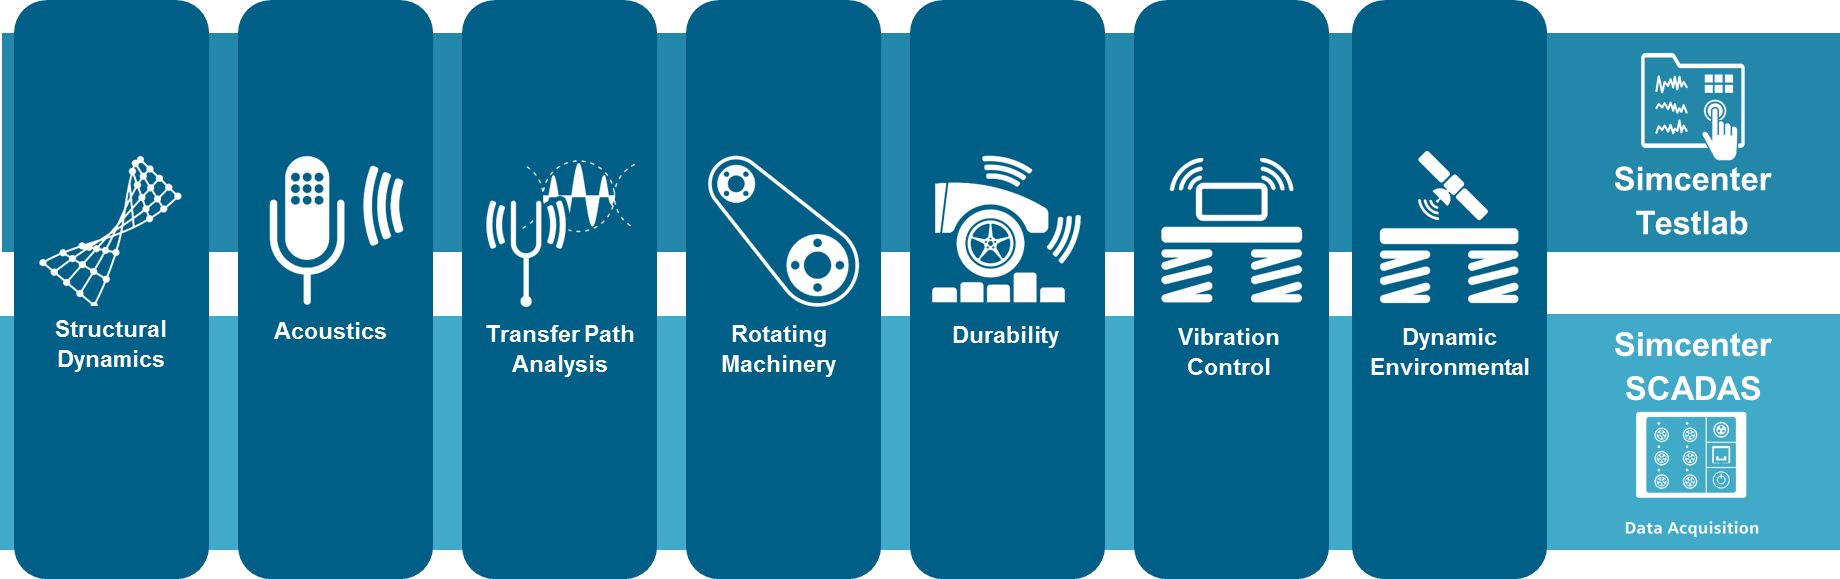 [page_produktySiemens/product_19.png]